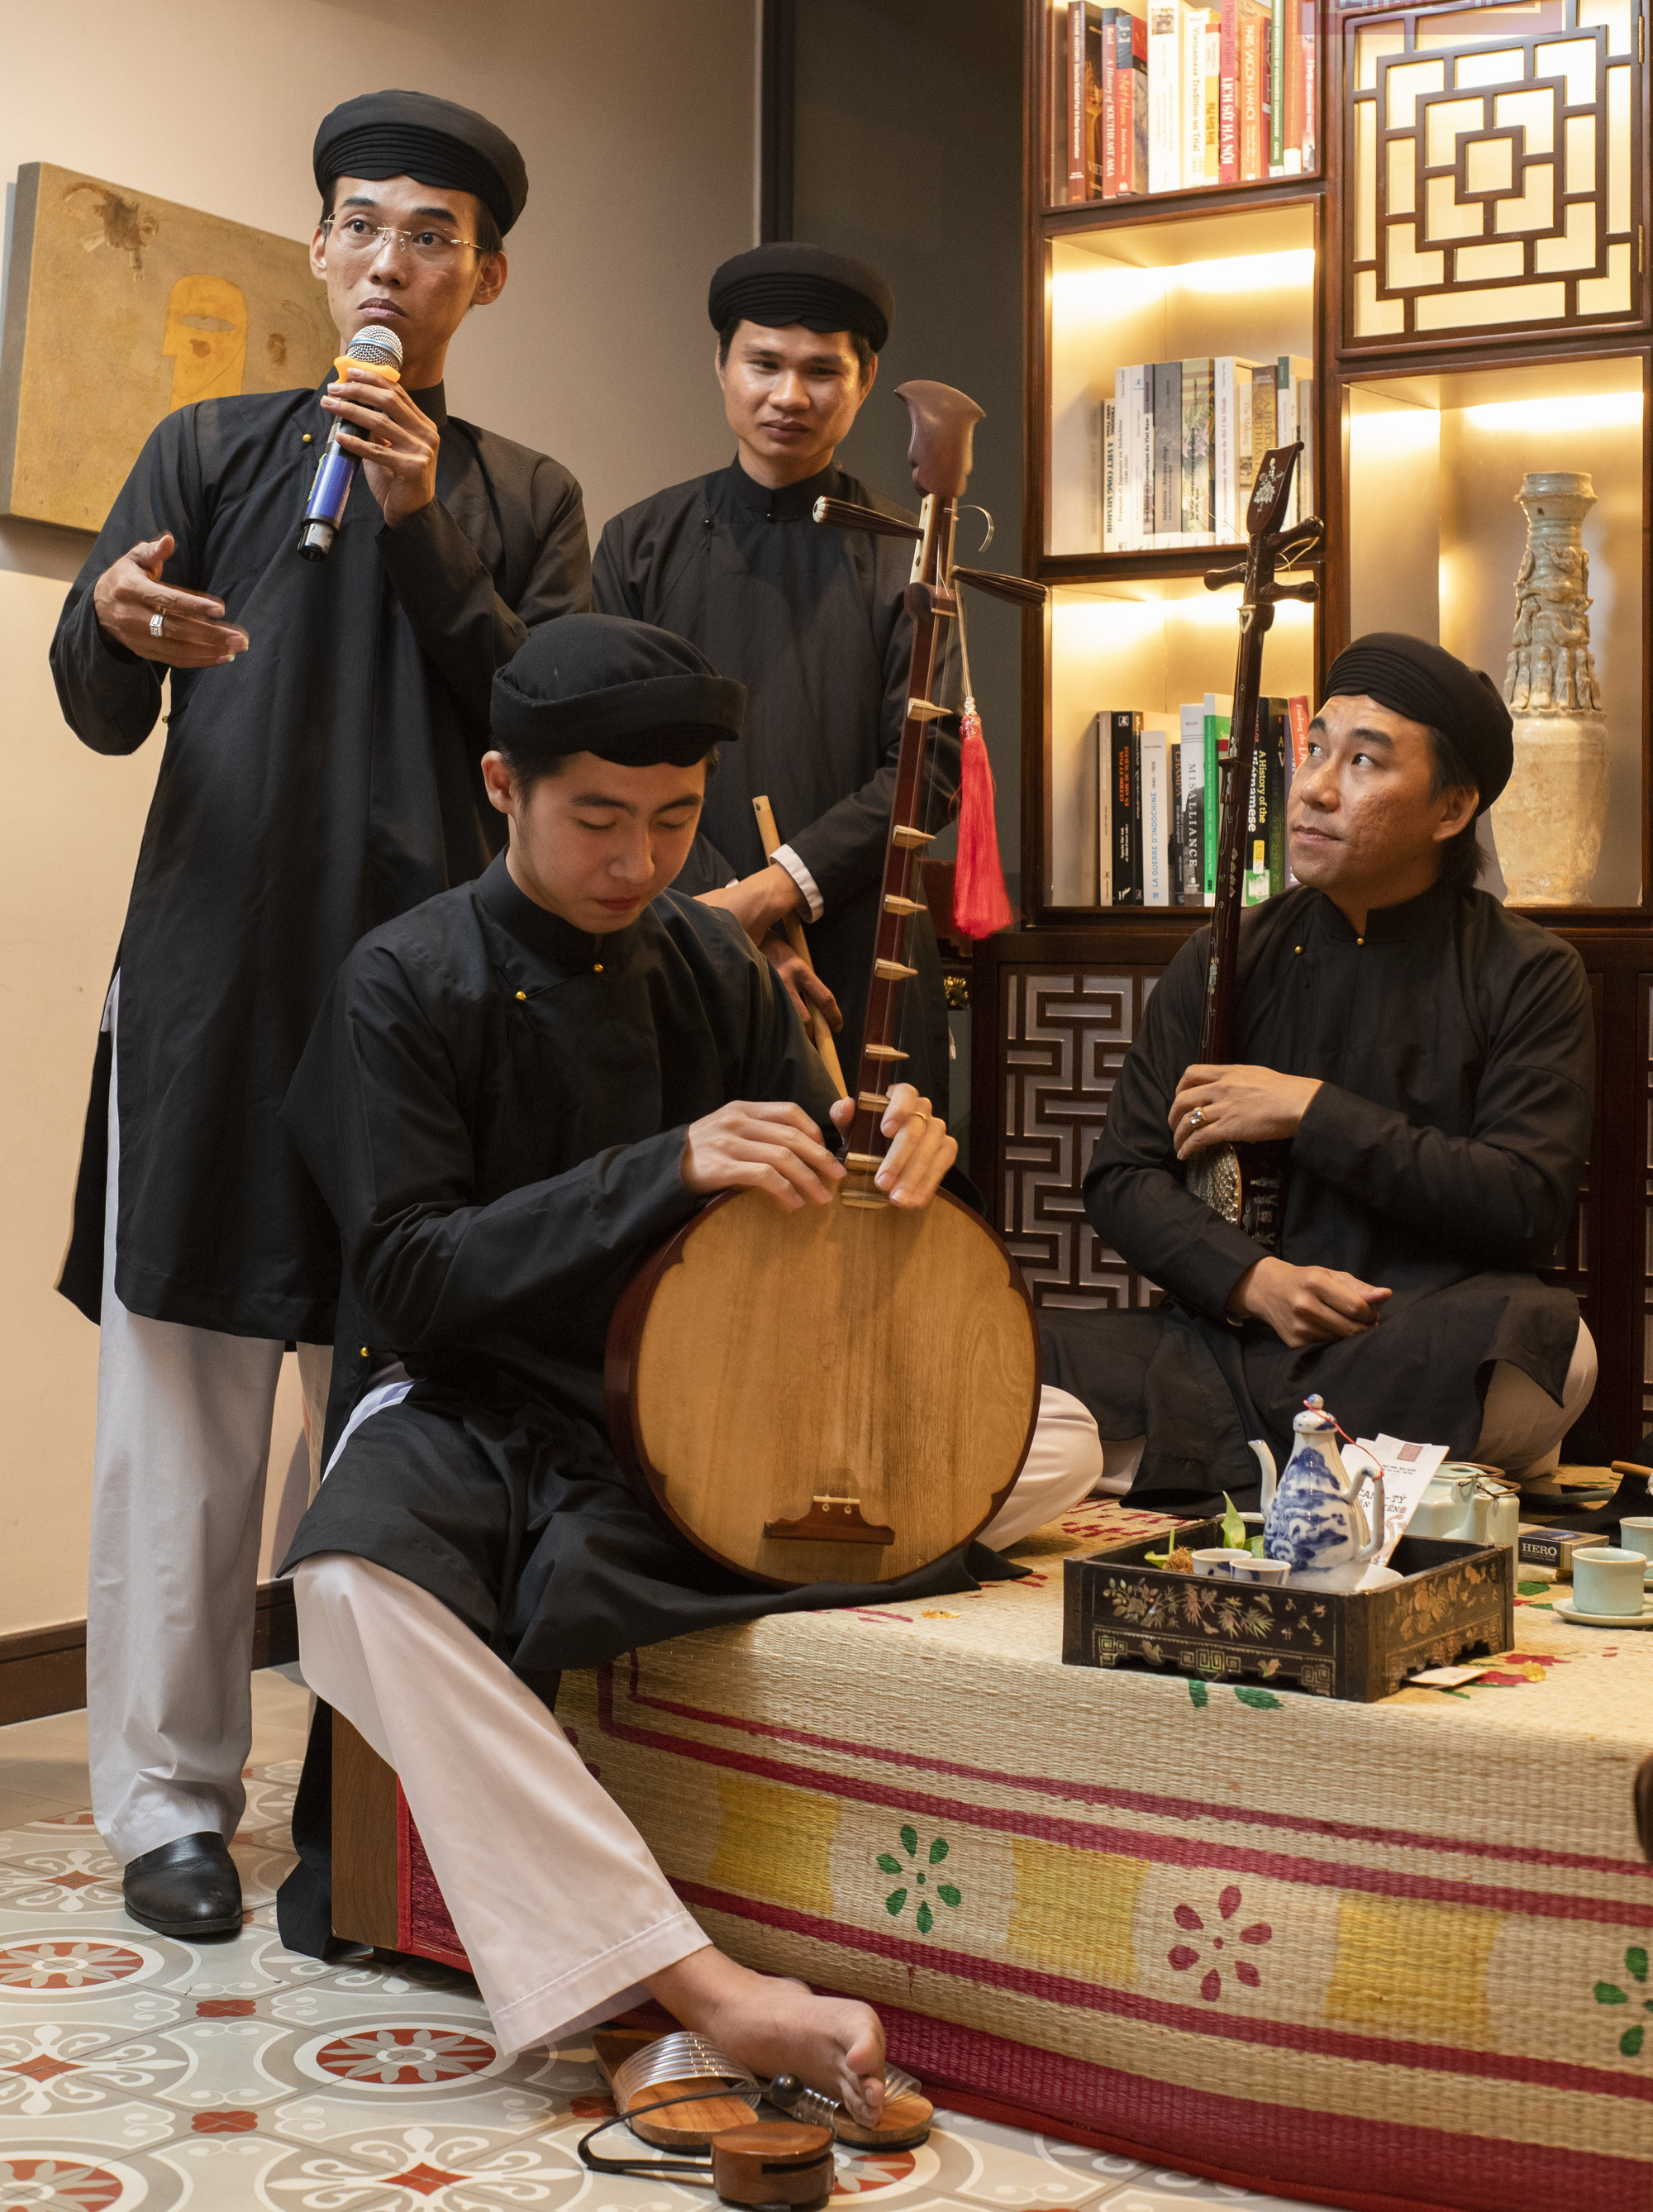 Dai Nam Club members in traditional clothes discuss Vietnamese musical instruments during a cultural event in a supplied photo.